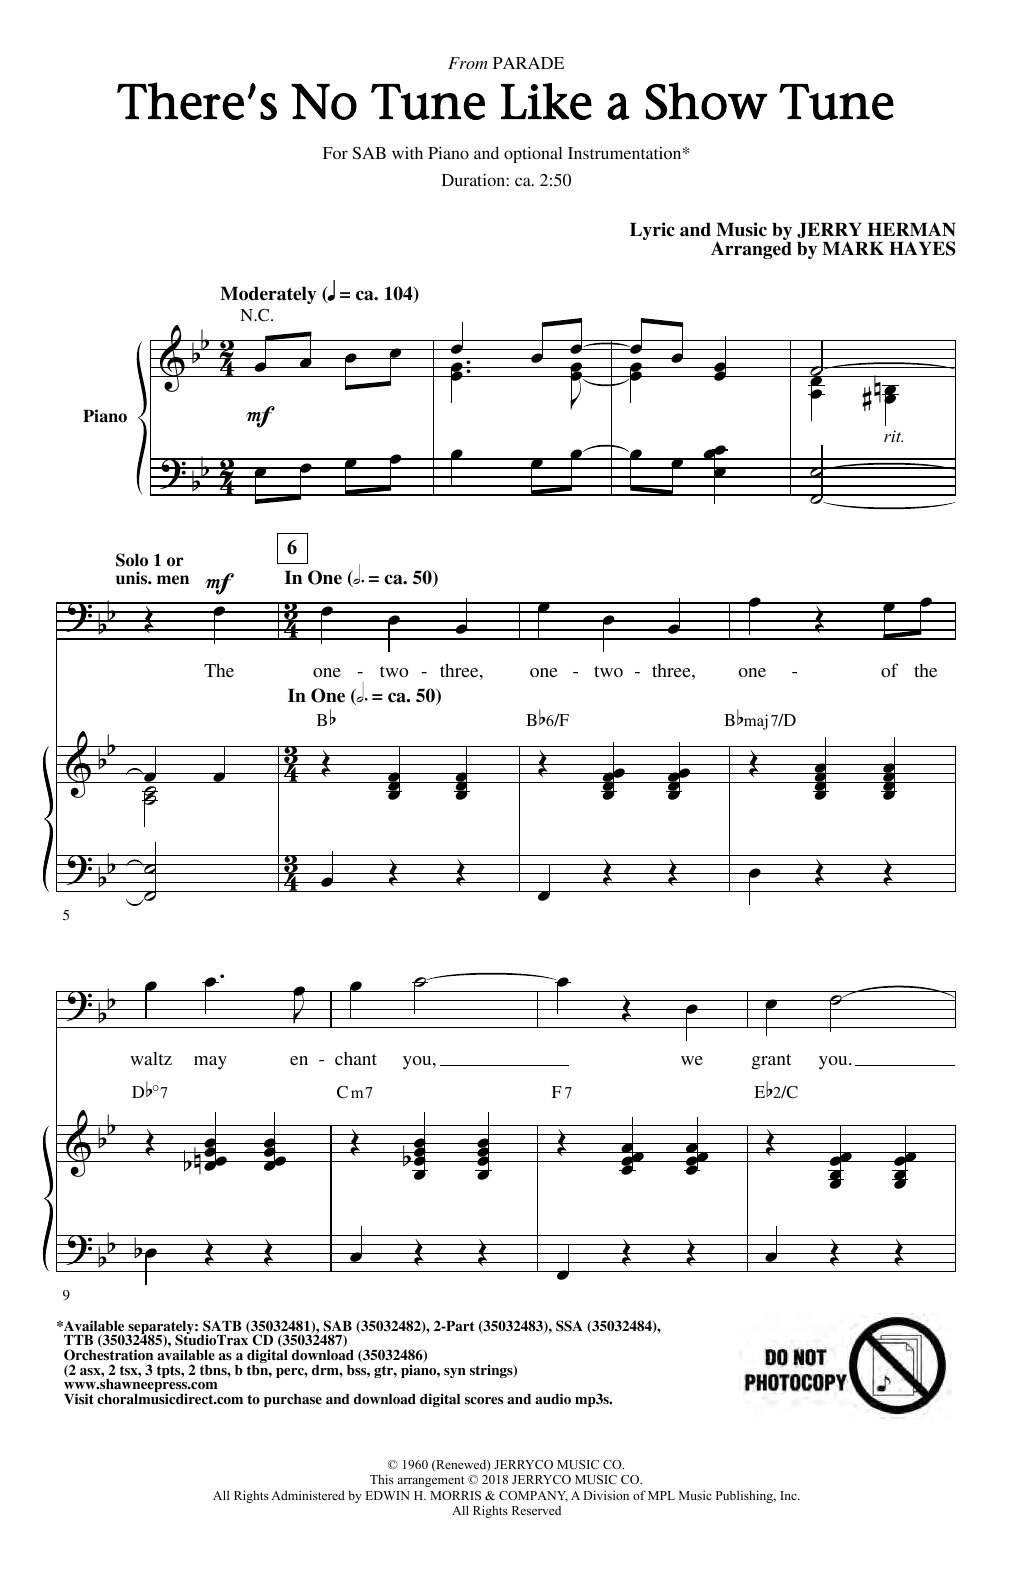 There's No Tune Like A Show Tune (arr. Mark Hayes) (SAB Choir)